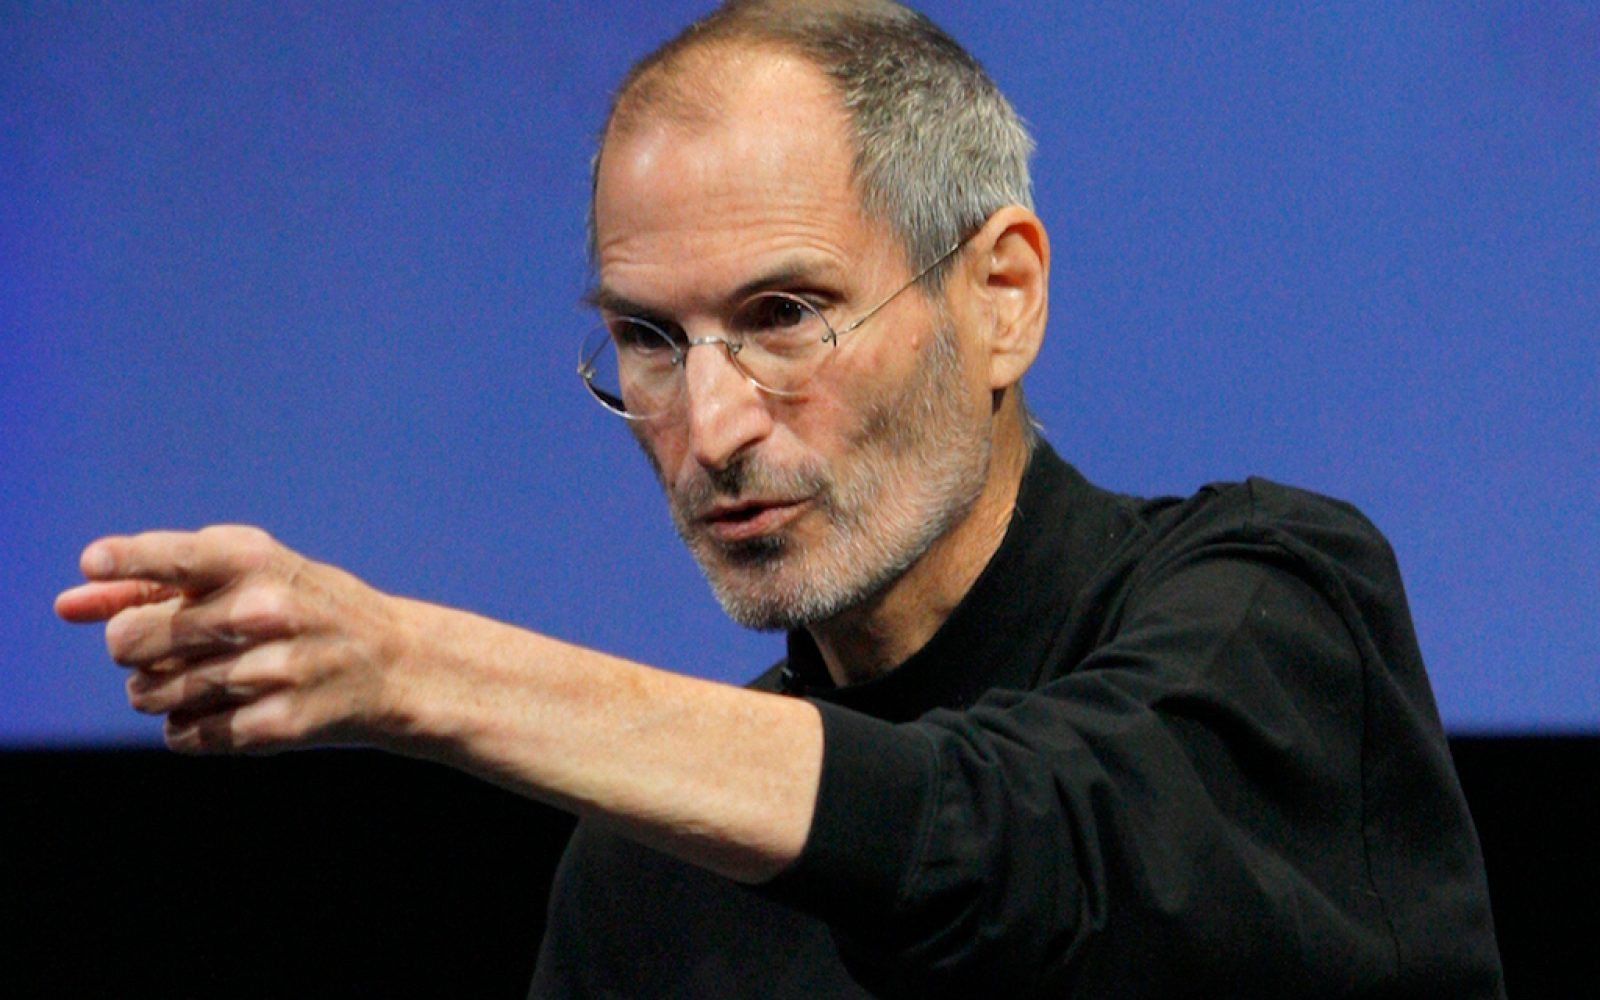 Commemorative Steve Jobs Postage Stamp To Be Released In 2015